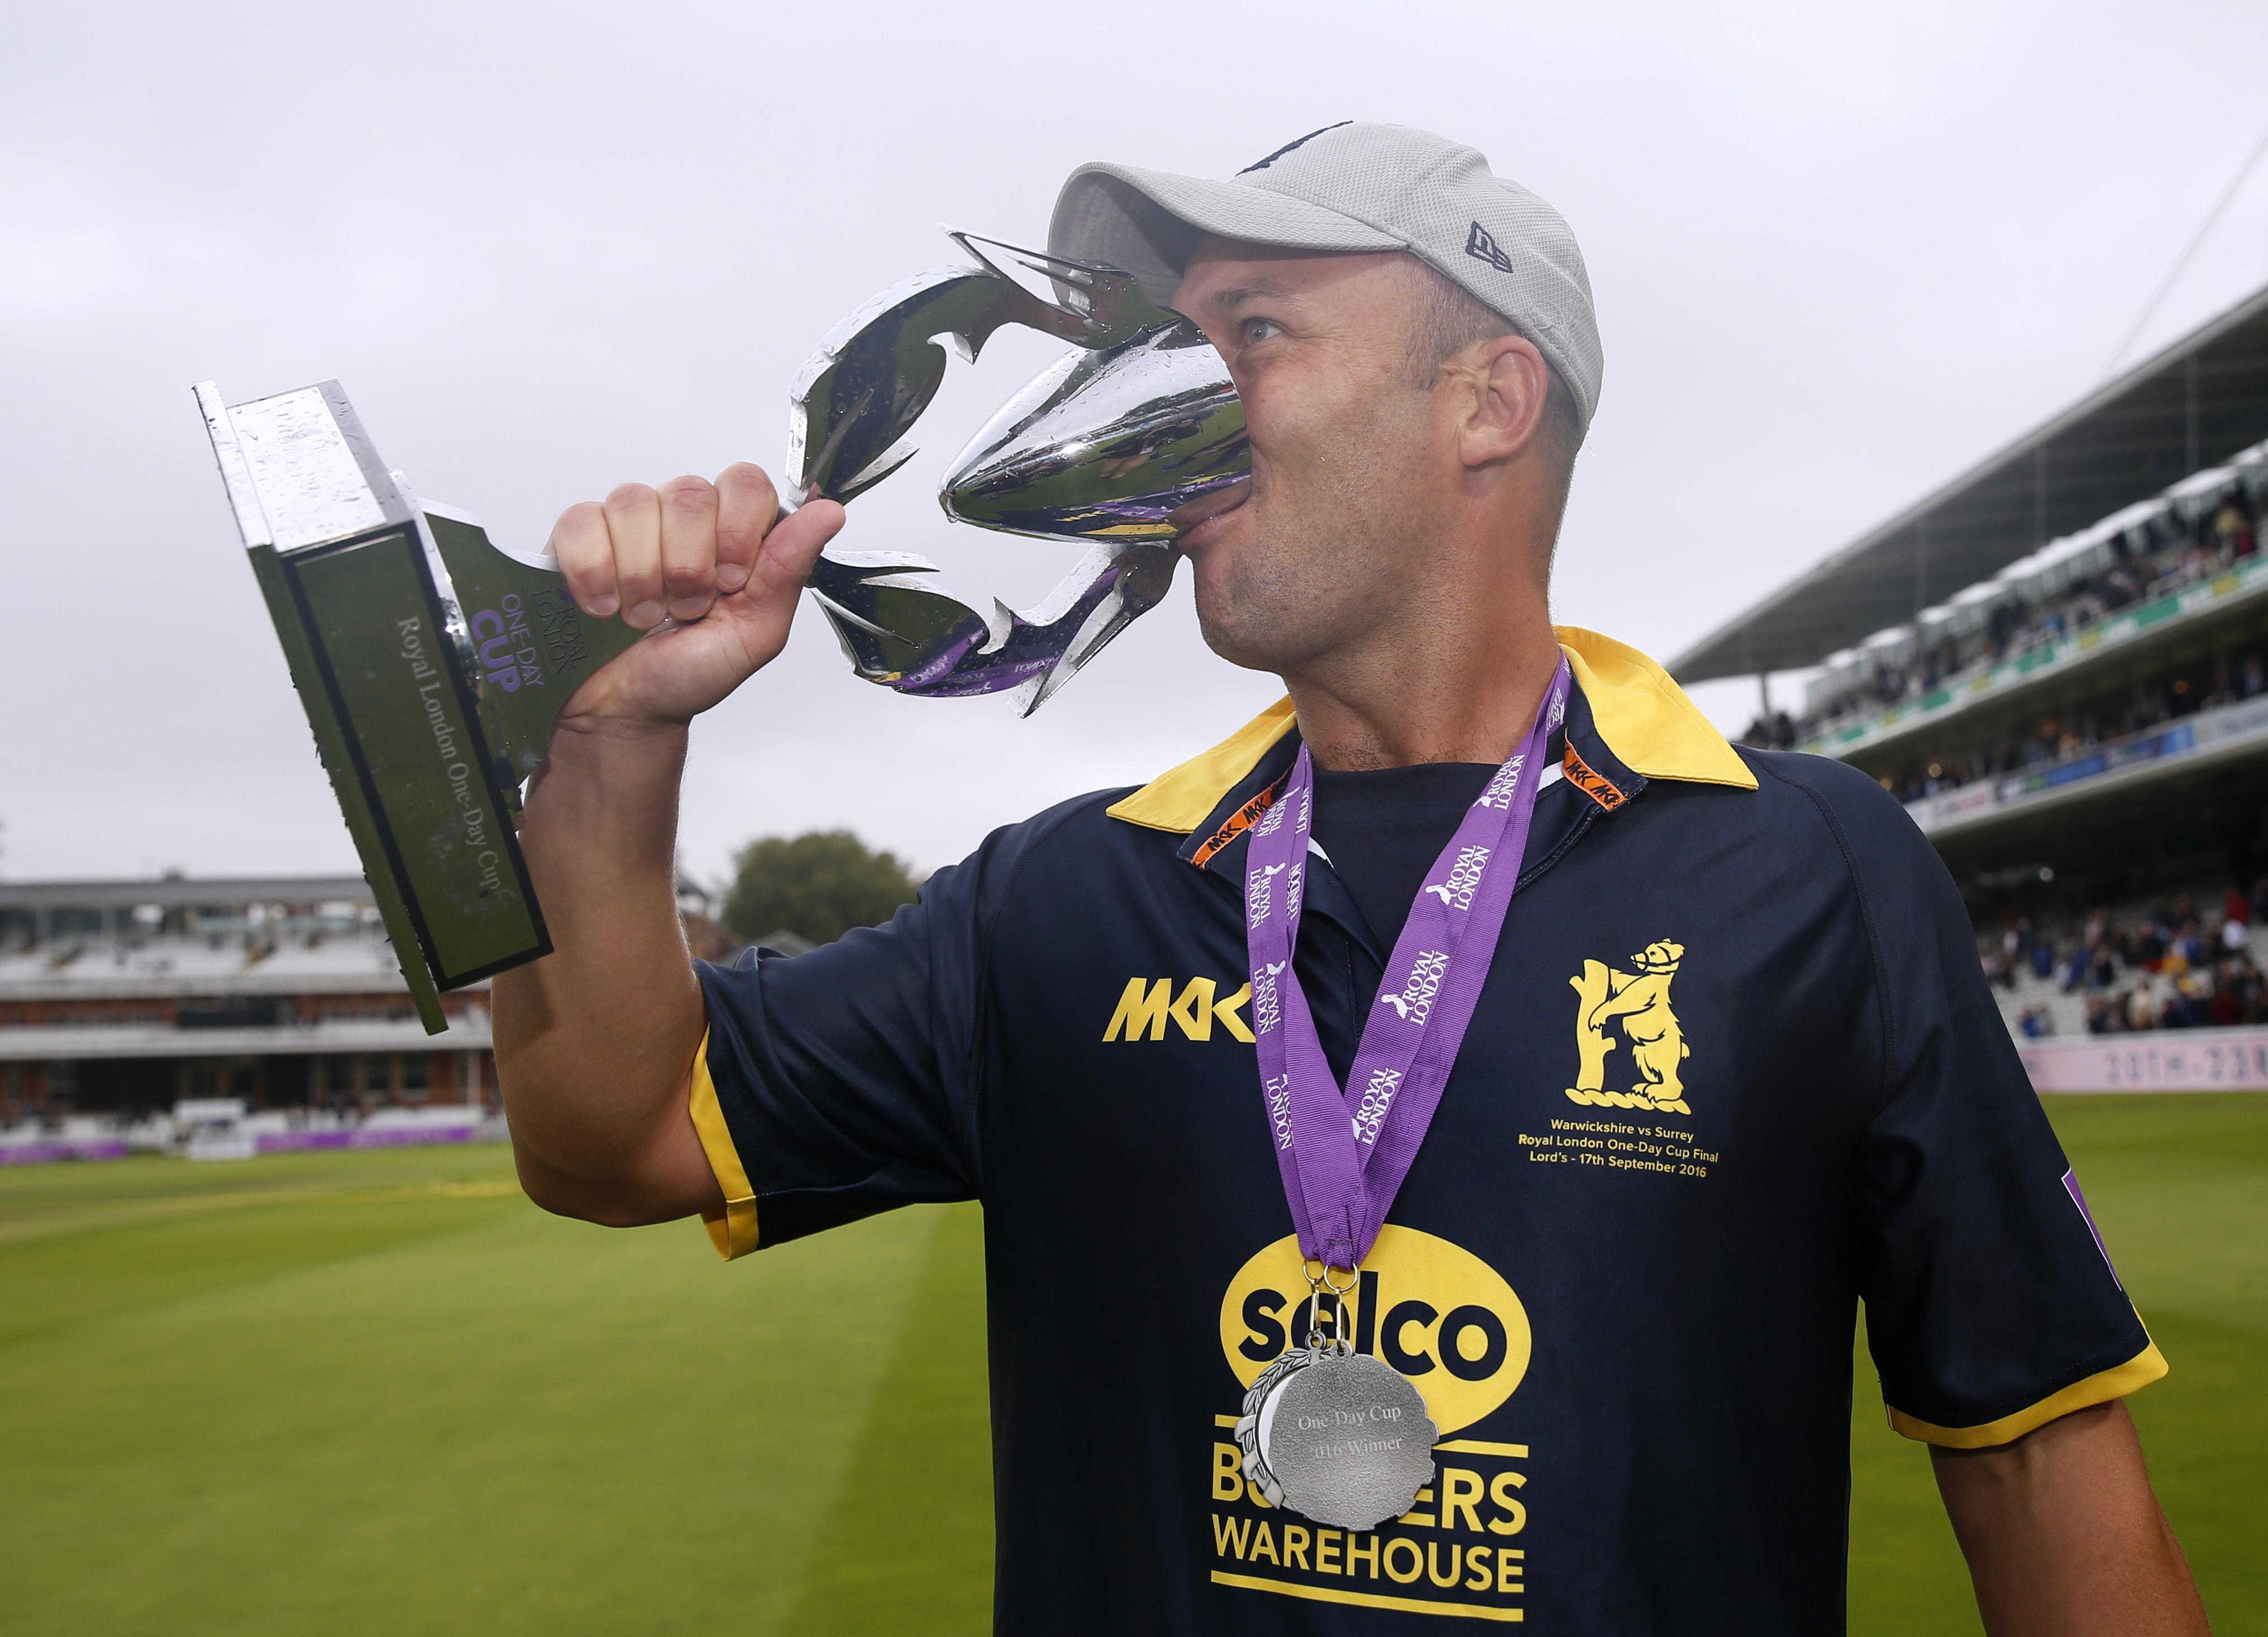 Jonathan Trott enjoyed plenty of success as a player with Warwickshire too